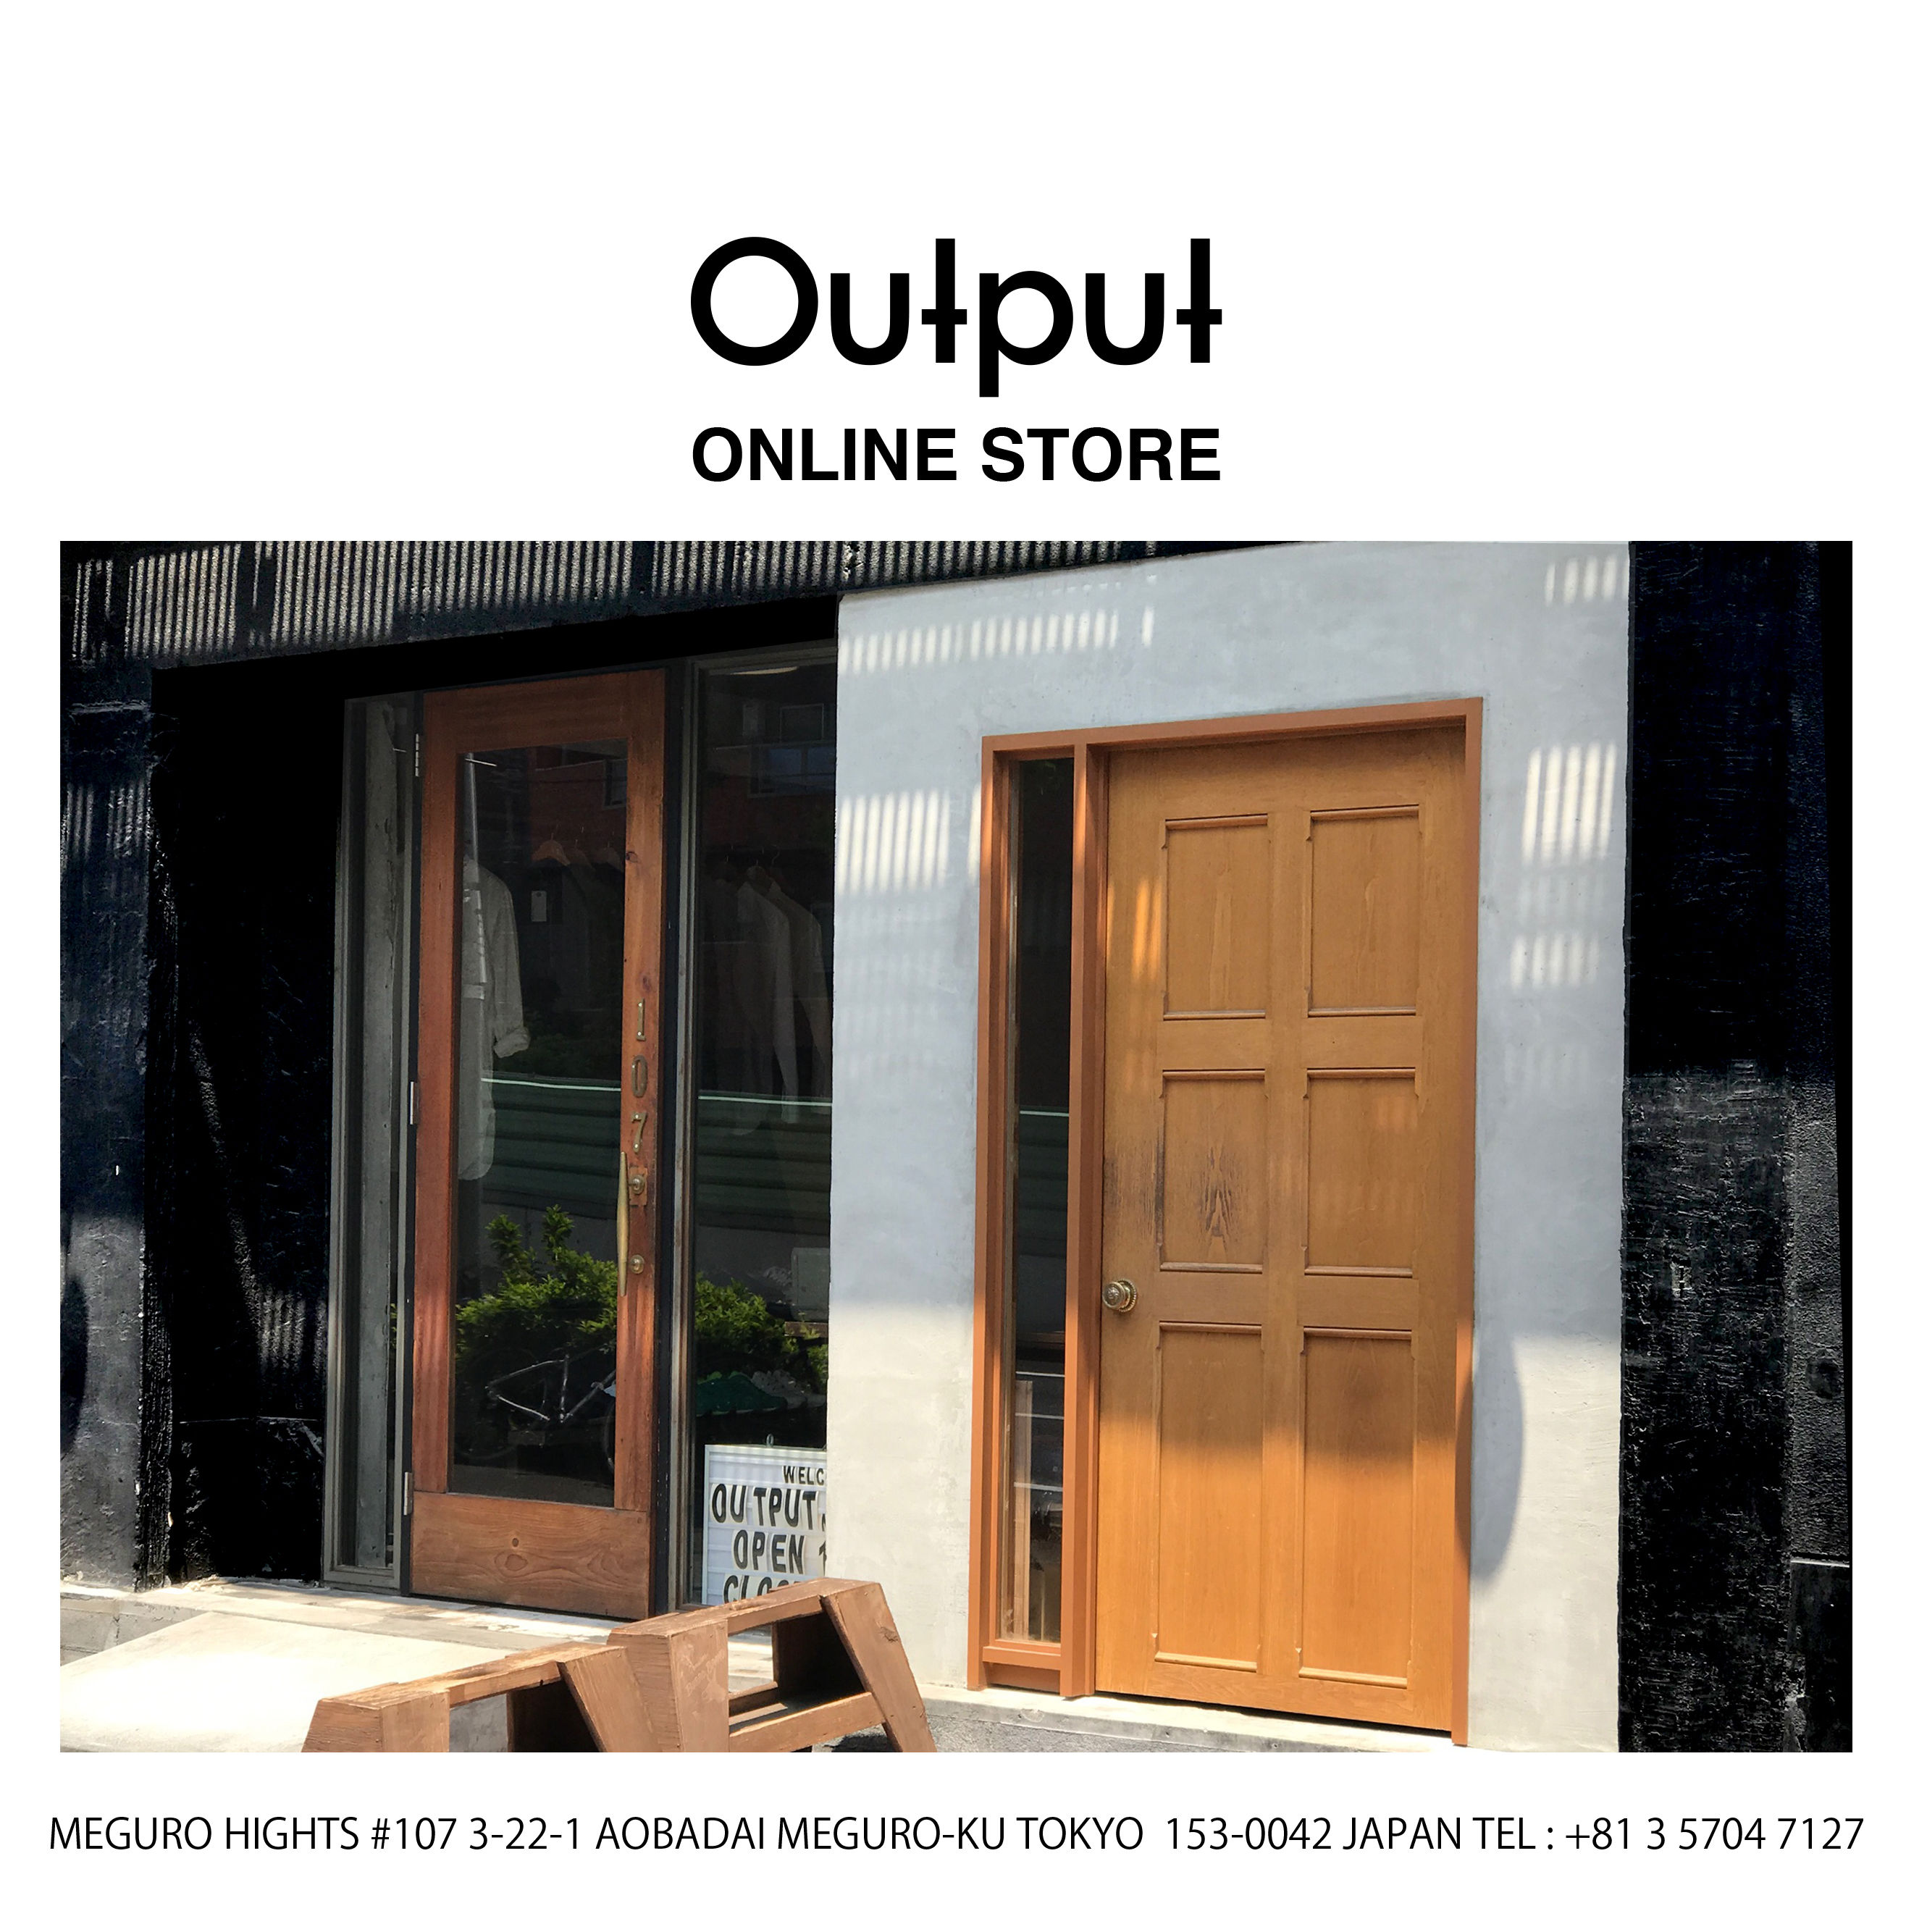 OUTPUT online store